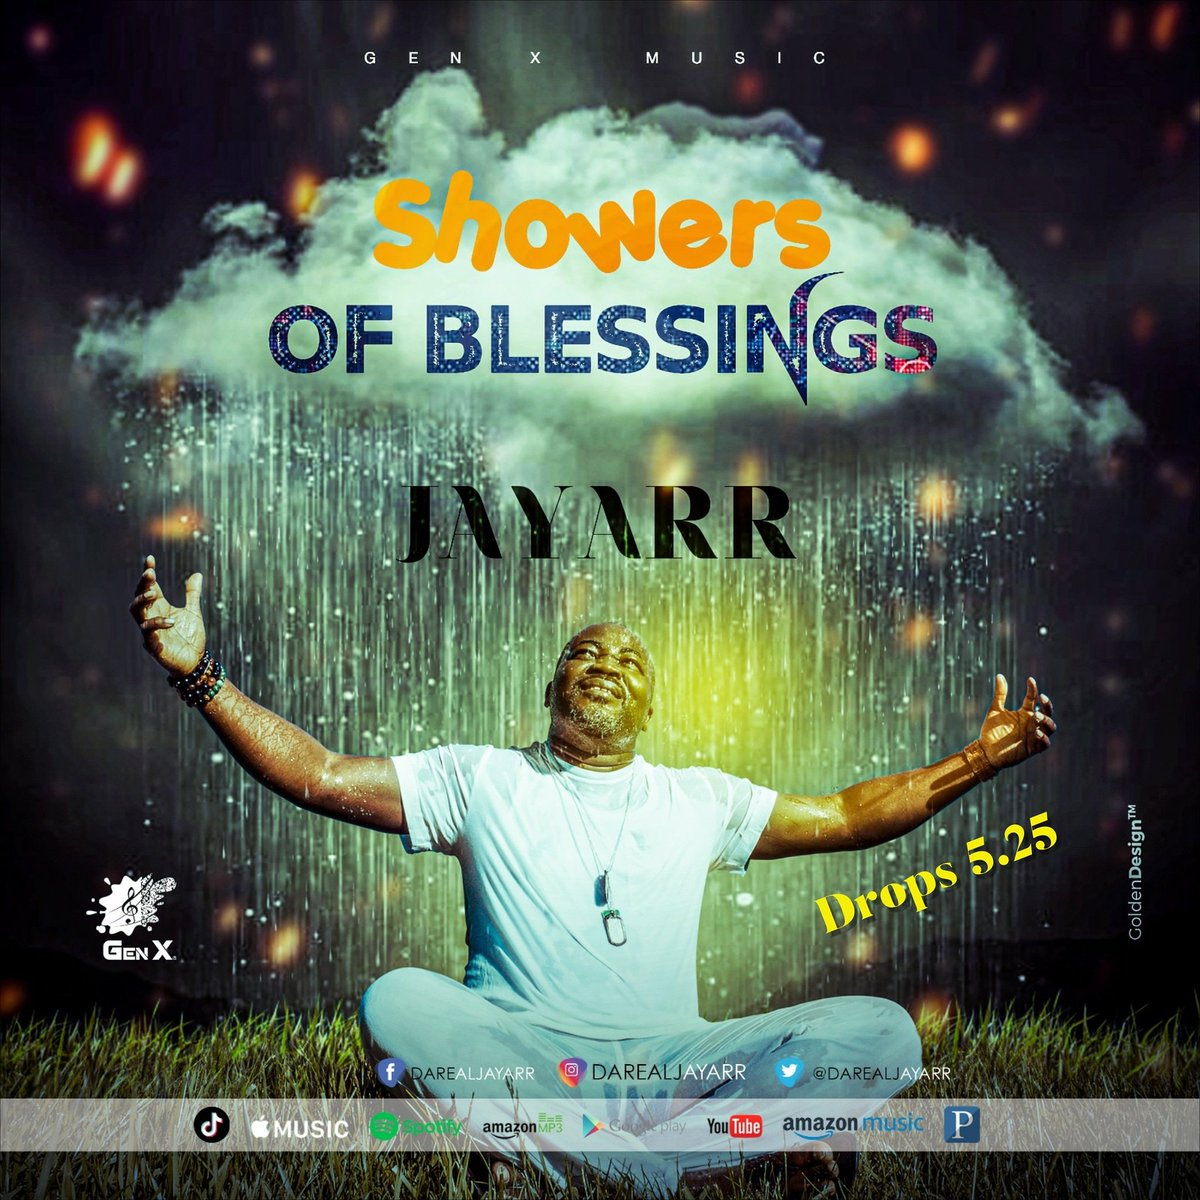 The number 5 represents God's grace. 5 × 5 = 25 represents grace upon grace. The 1st single on the album titled 5 is Showers of Blessings...drops 5.25 #showersofblessings #memorialday #musicislife #lifehappens #notbyaccident #itwasmeanttobethisway #reggaemusic   #SaloneTwitter https://t.co/z6VX4VusgV